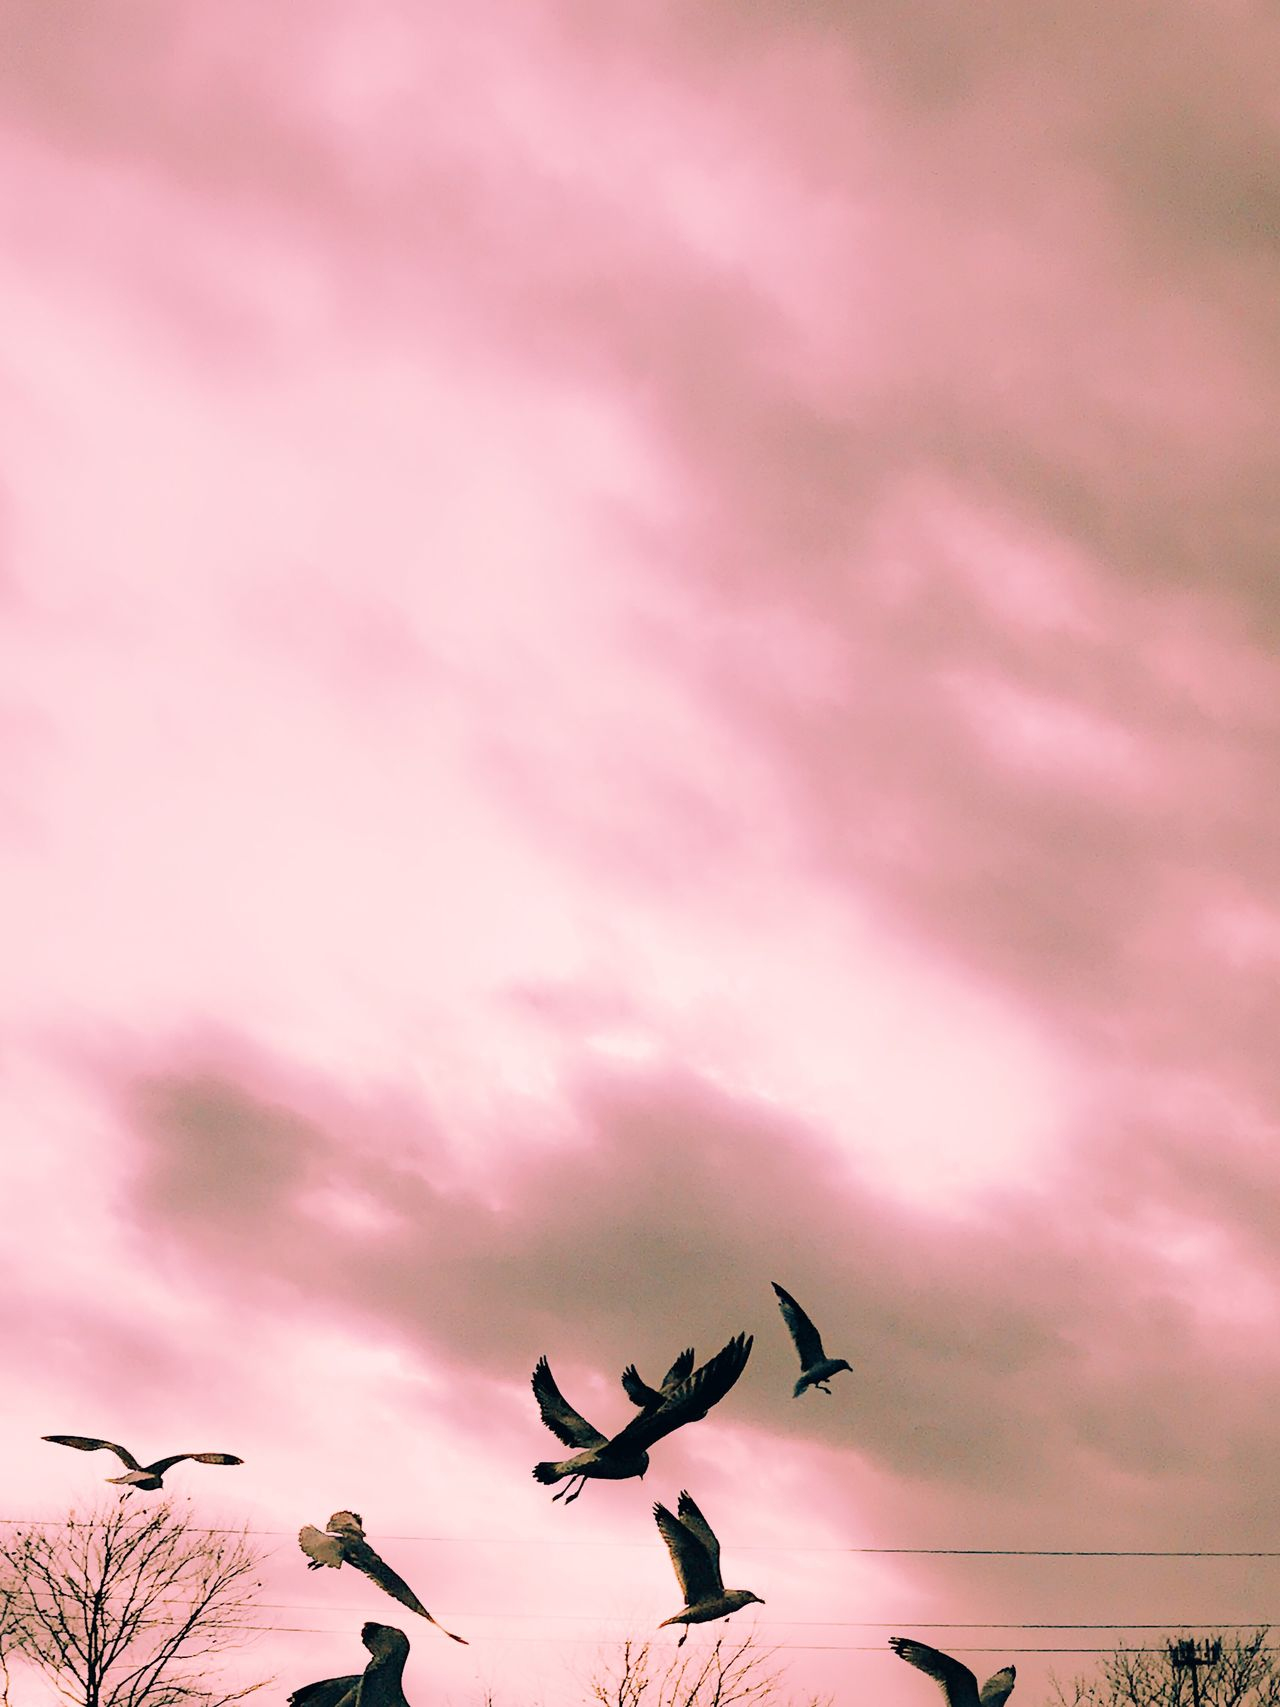 Nature Low Angle View Pink Color No People Sky Flying Bird Beauty In Nature Animal Themes Cloud - Sky Outdoors Flower Animals In The Wild Fragility Tree Day Pink